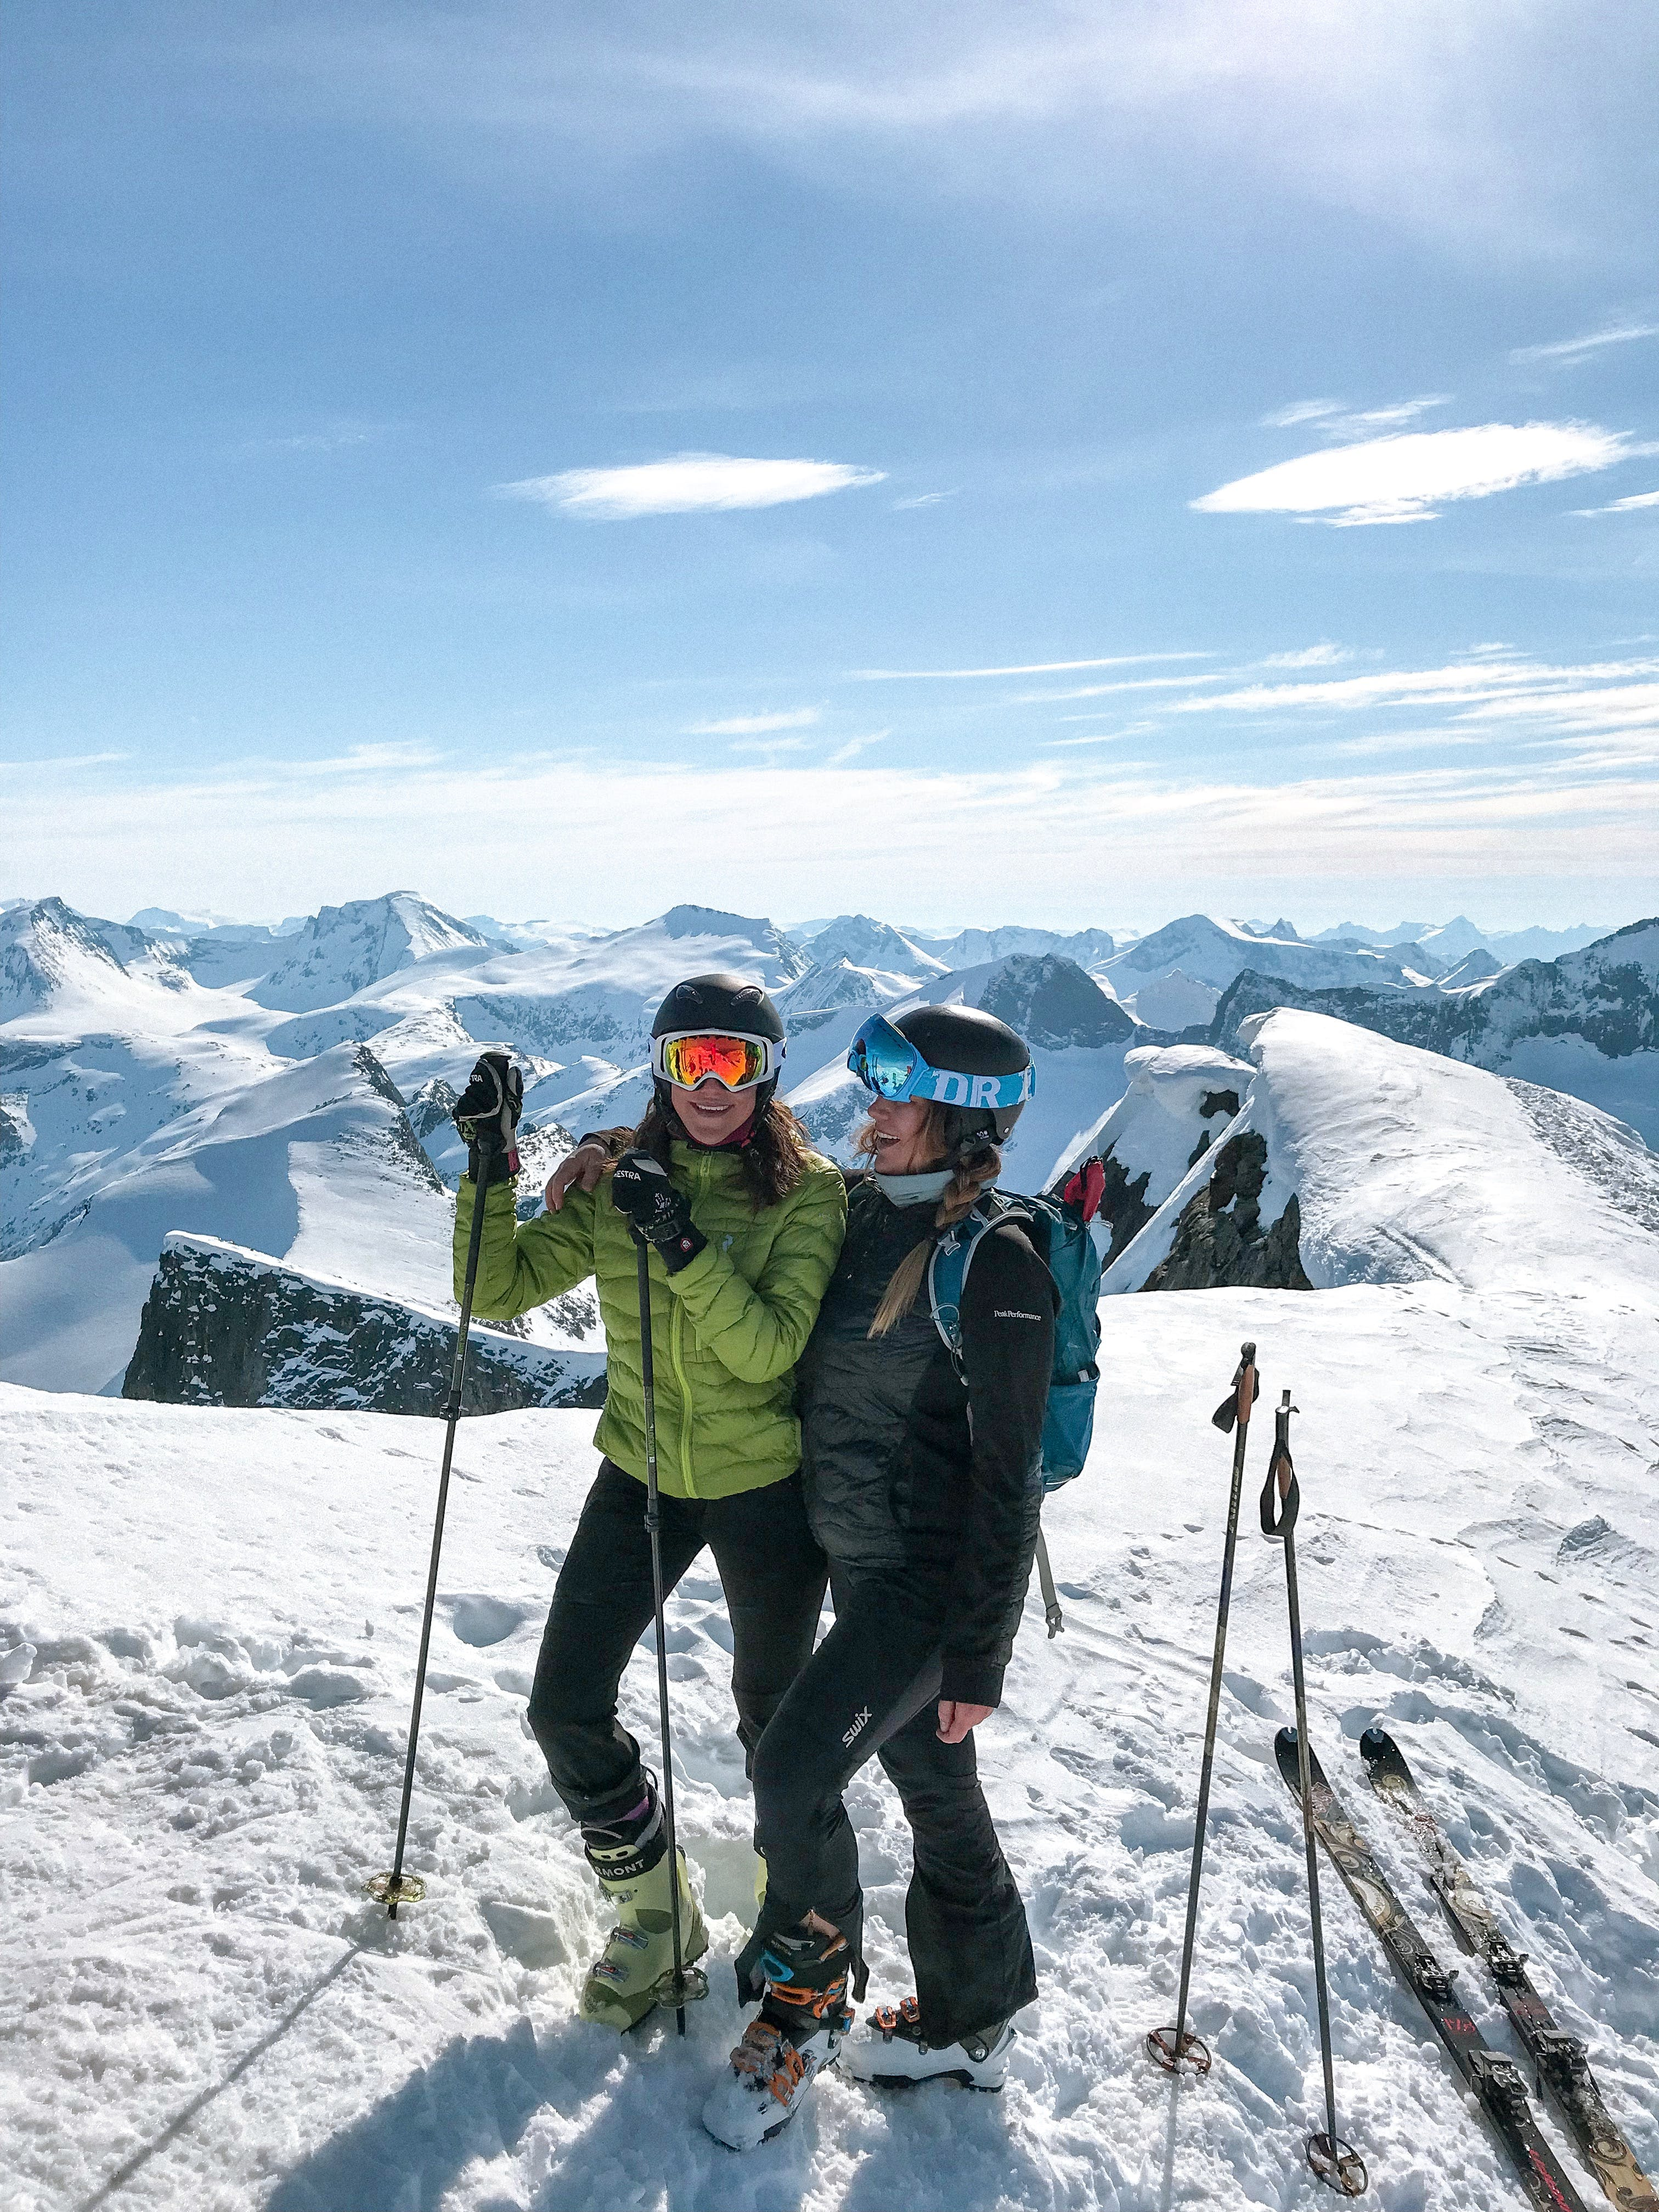 Two Women Skiing on Snow